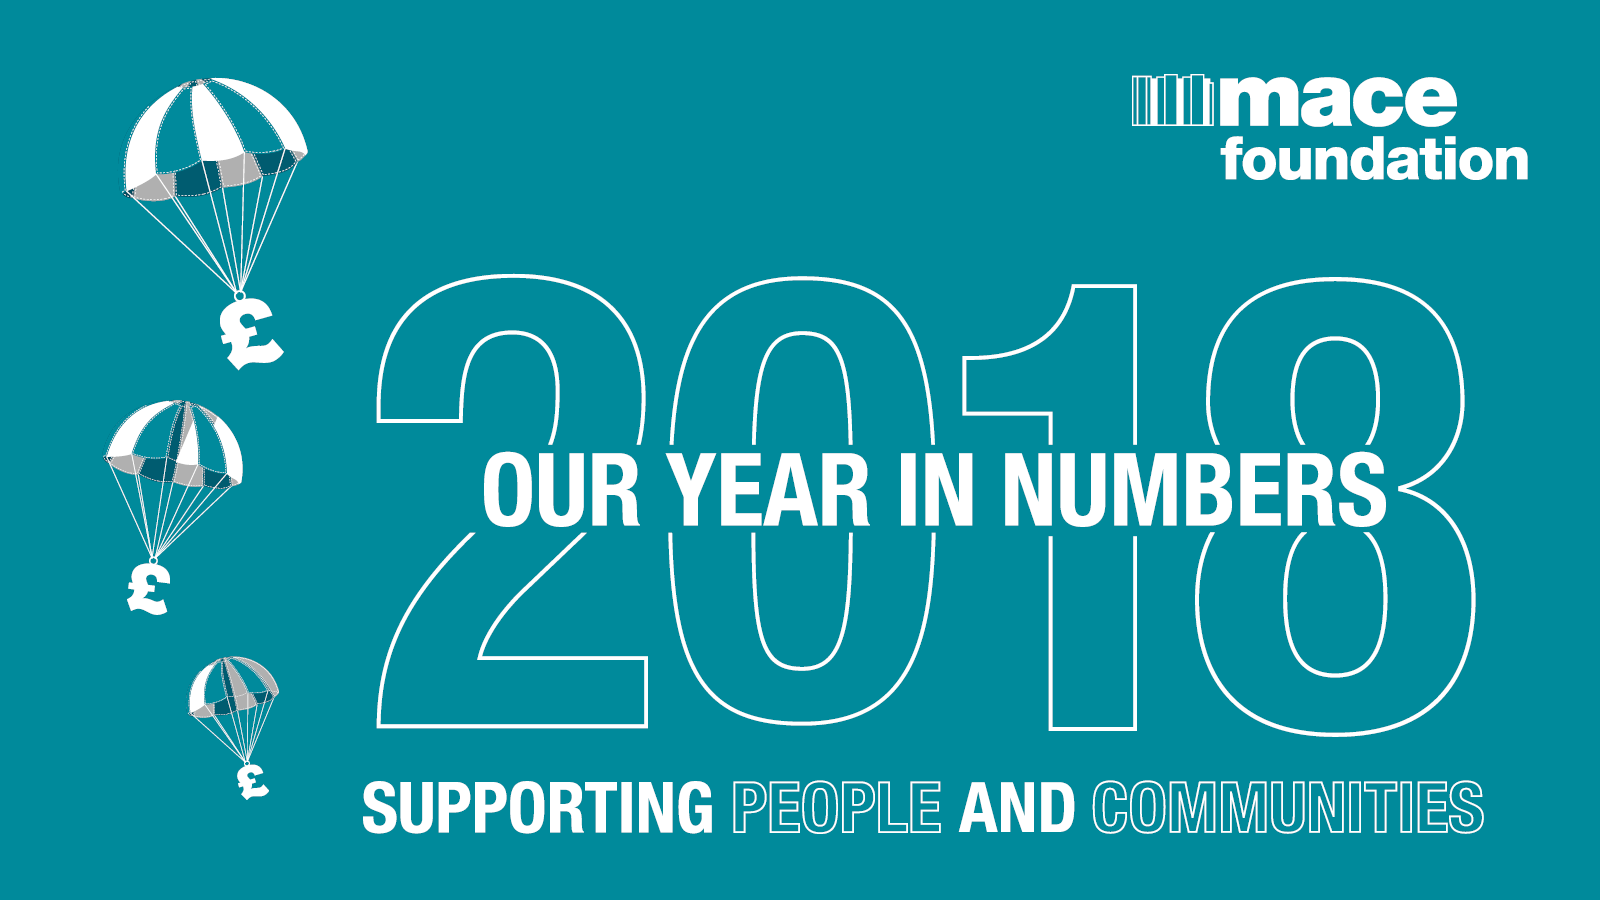 Mace Foundation 2018 in numbers